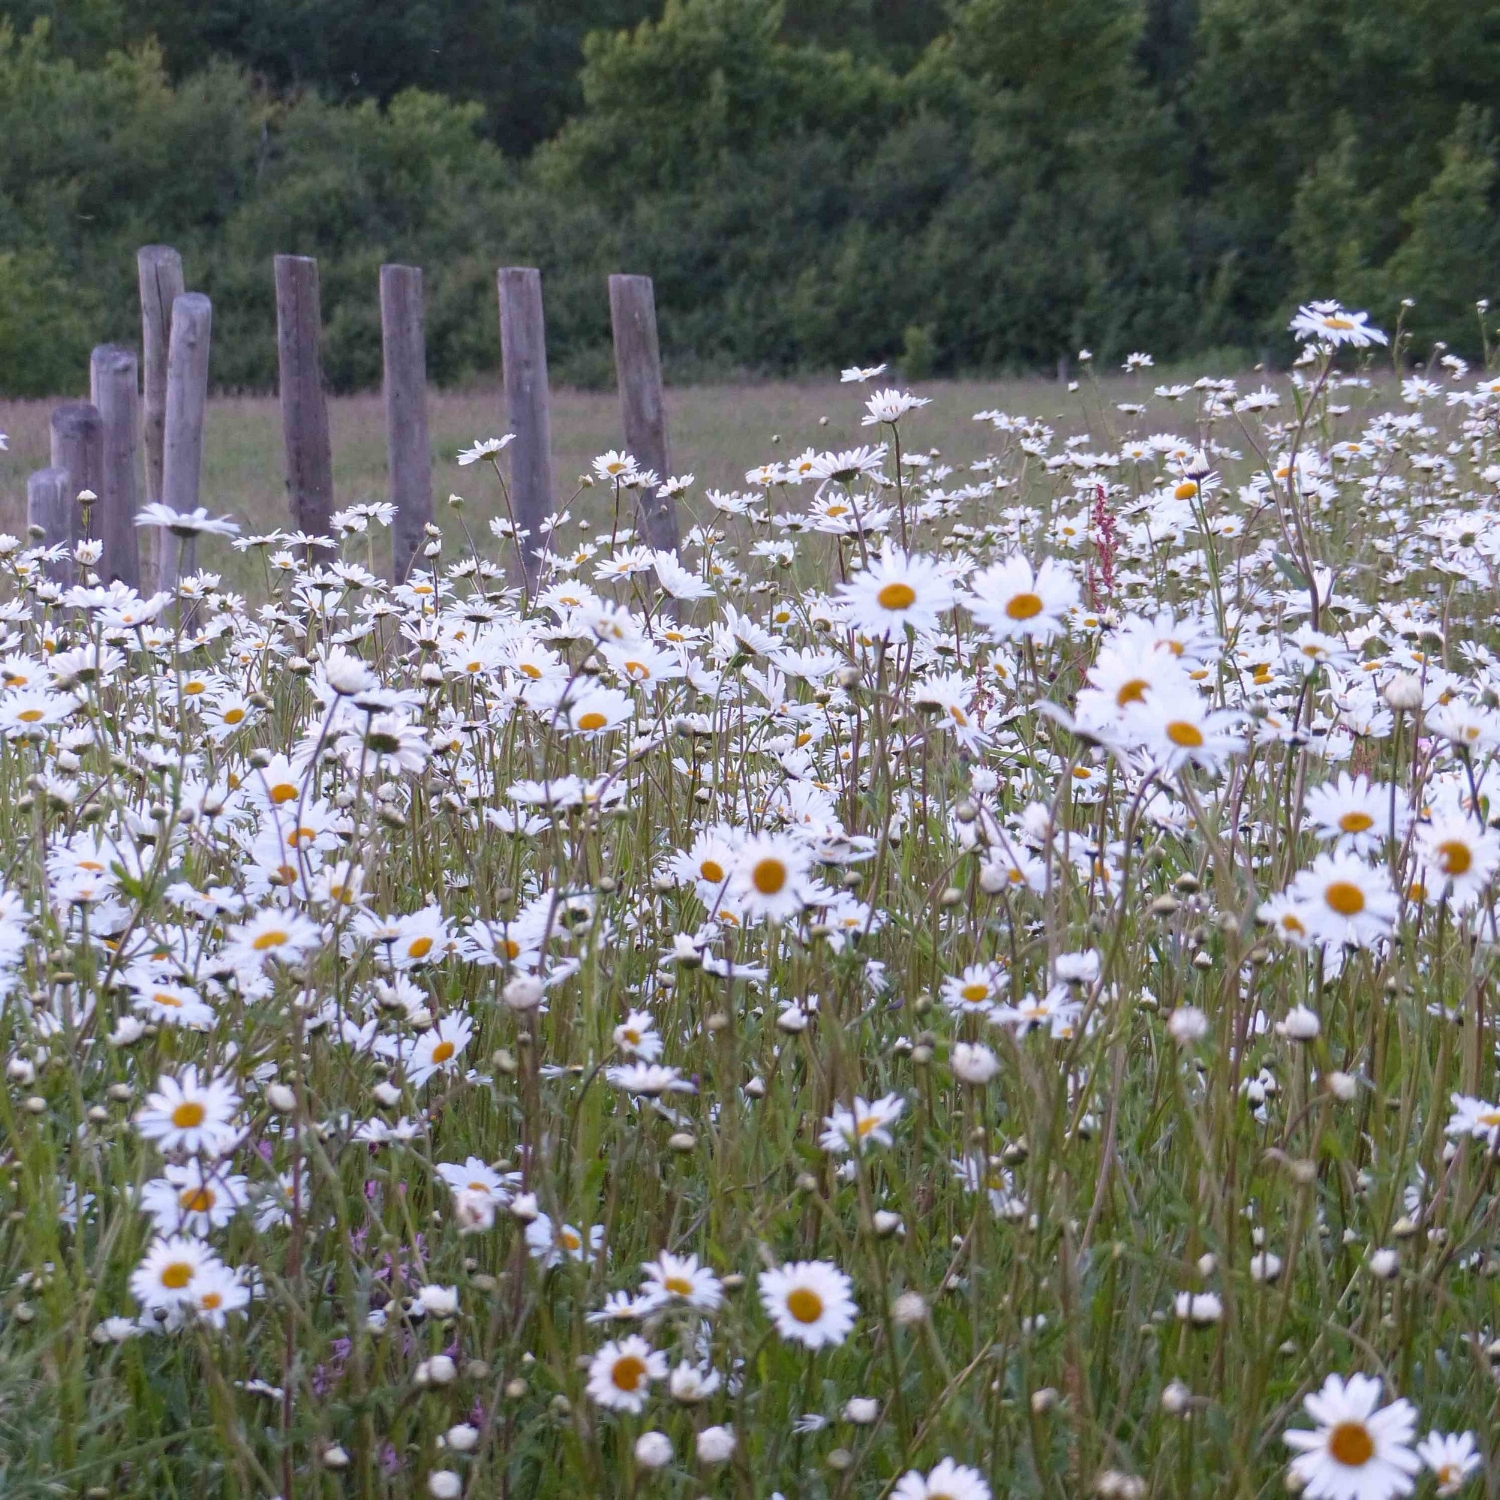 daisies-in-the-meadow-claire-benn.jpg